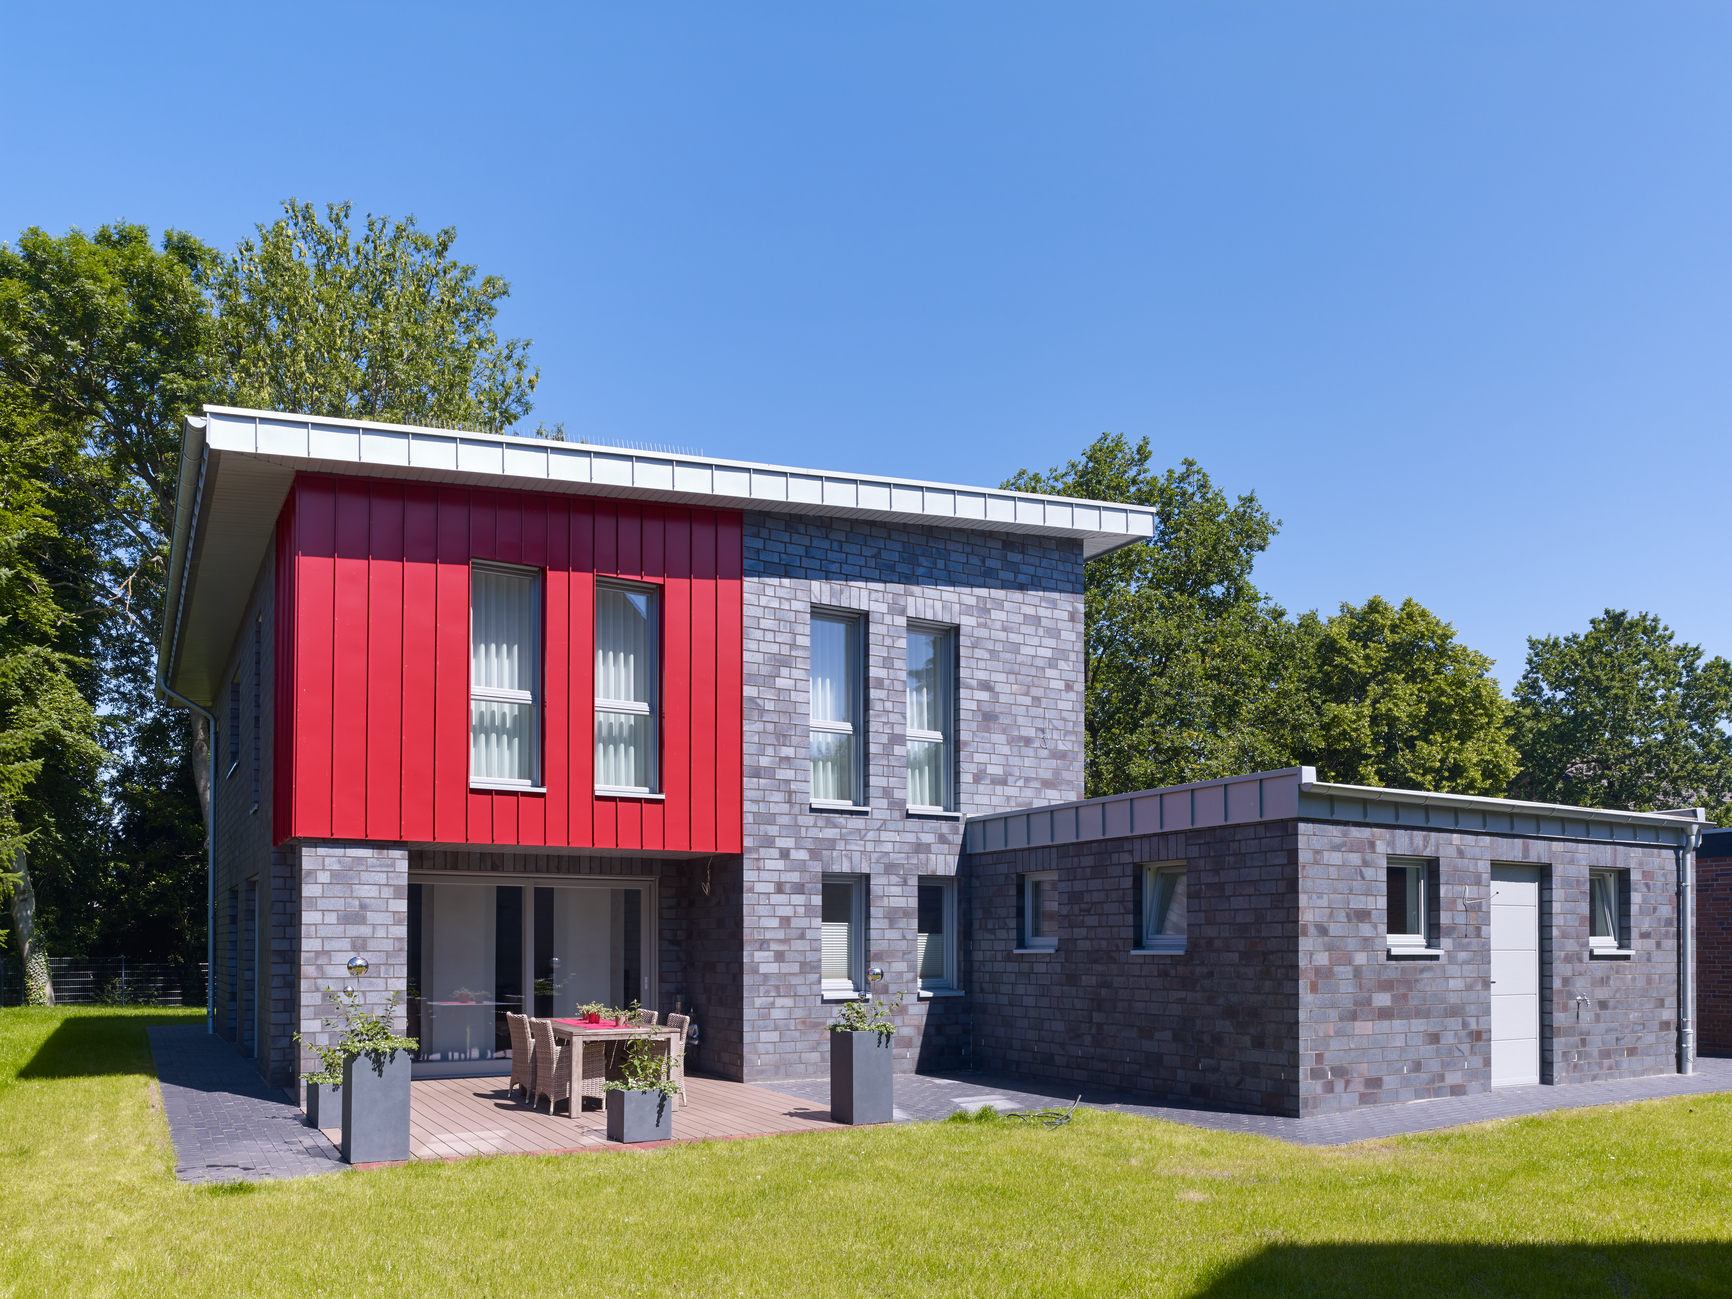 Residential building artColor RHEINZINK brick red